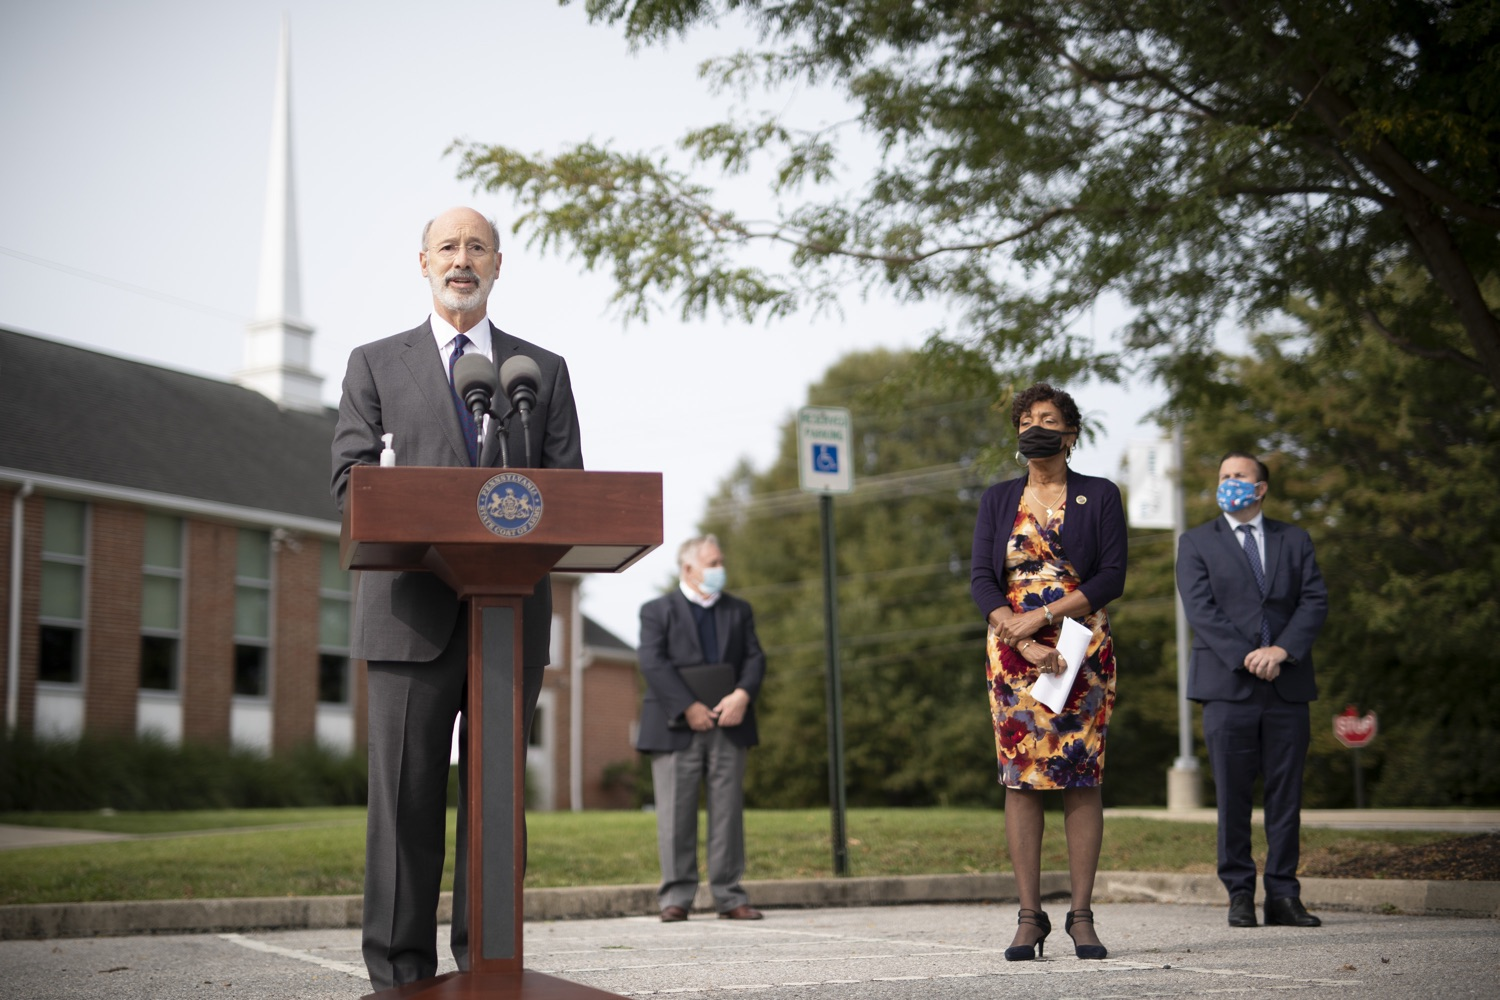 "<a href=""https://filesource.wostreaming.net/commonwealthofpa/photo/18259_gov_electionReform_dz_002.jpg"" target=""_blank"">⇣ Download Photo<br></a>Pennsylvania Governor Tom Wolf speaking to the press.  With only seven weeks left before the Nov. 3 election, Governor Tom Wolf is urging immediate legislative action to ensure voters receive their mail-in ballots early and give counties more time to process and count ballots before election day. The governor also reassured Pennsylvanians that in-person voting is safe, and all eligible votes will be counted. SEPTEMBER 14, 2020 - YORK, PA."